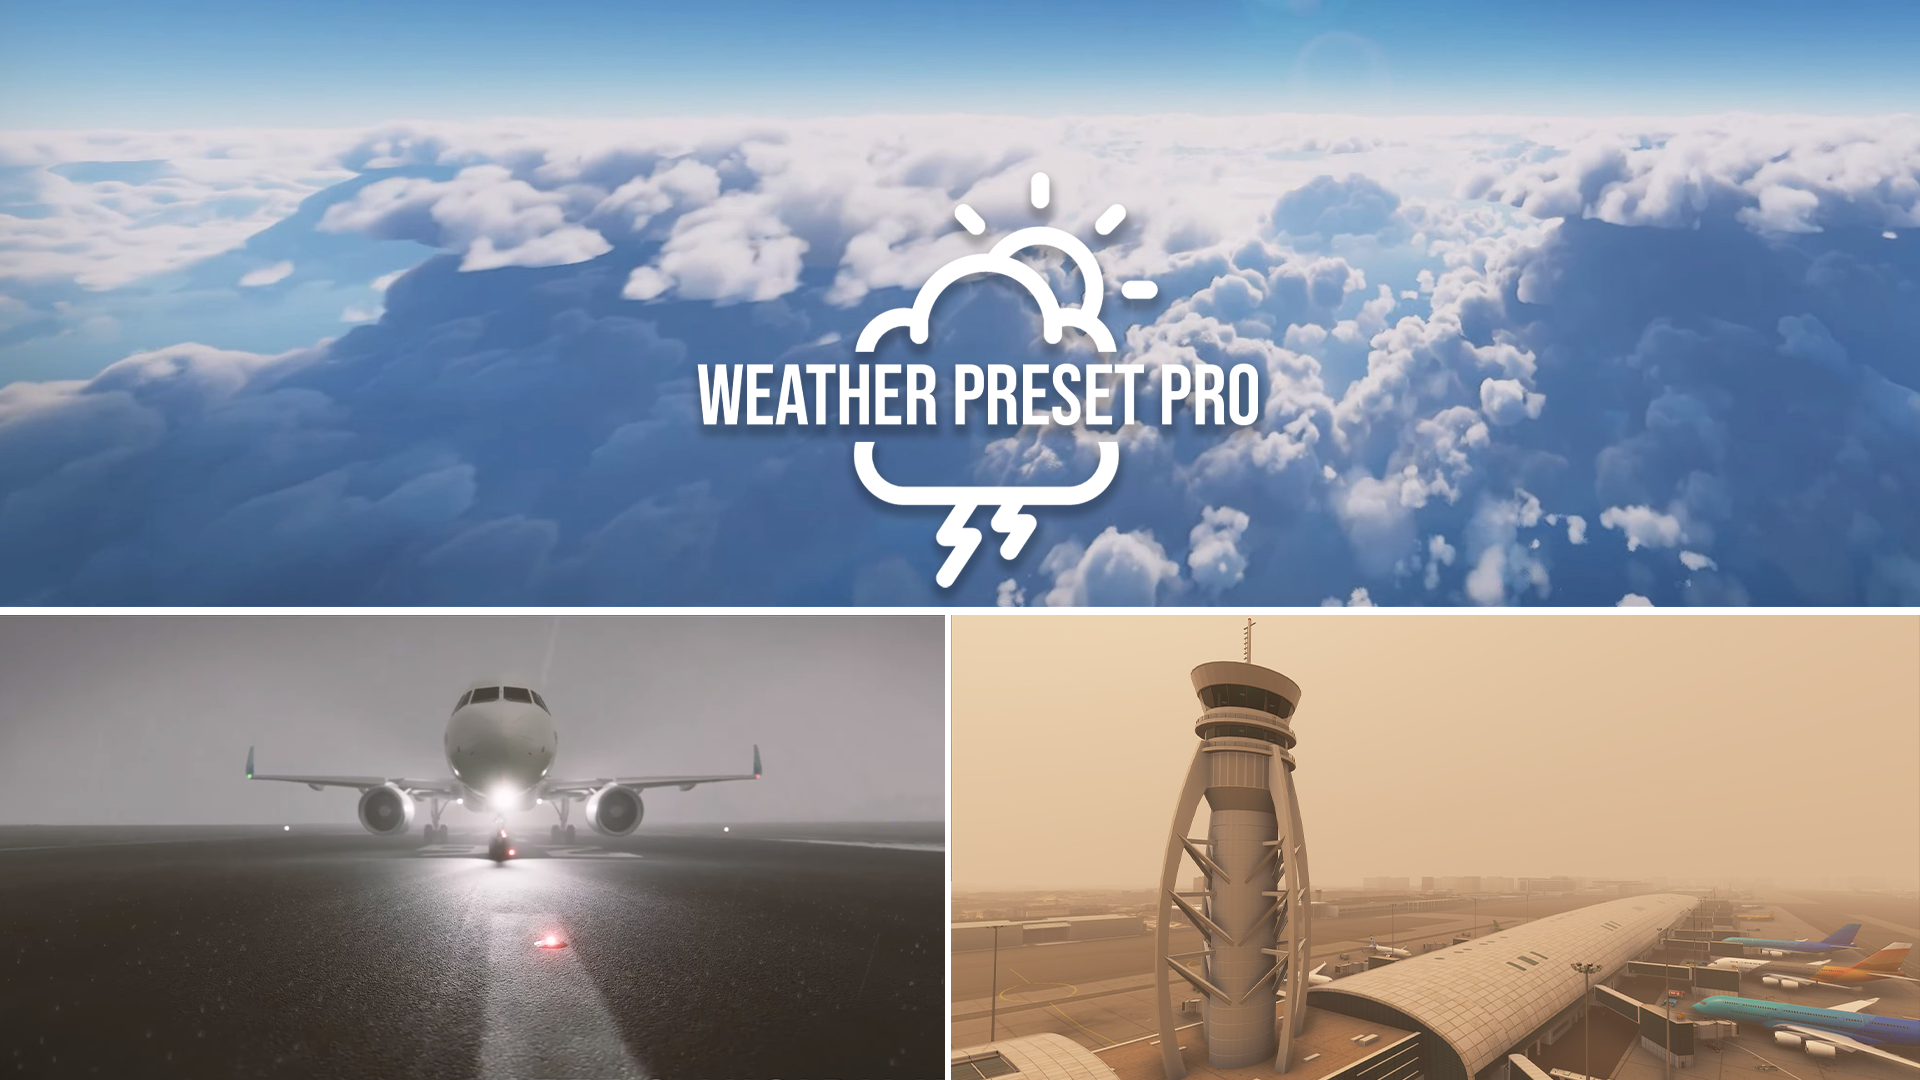 SOFLY LTD - WEATHER PRESET PRO FOR MSFS